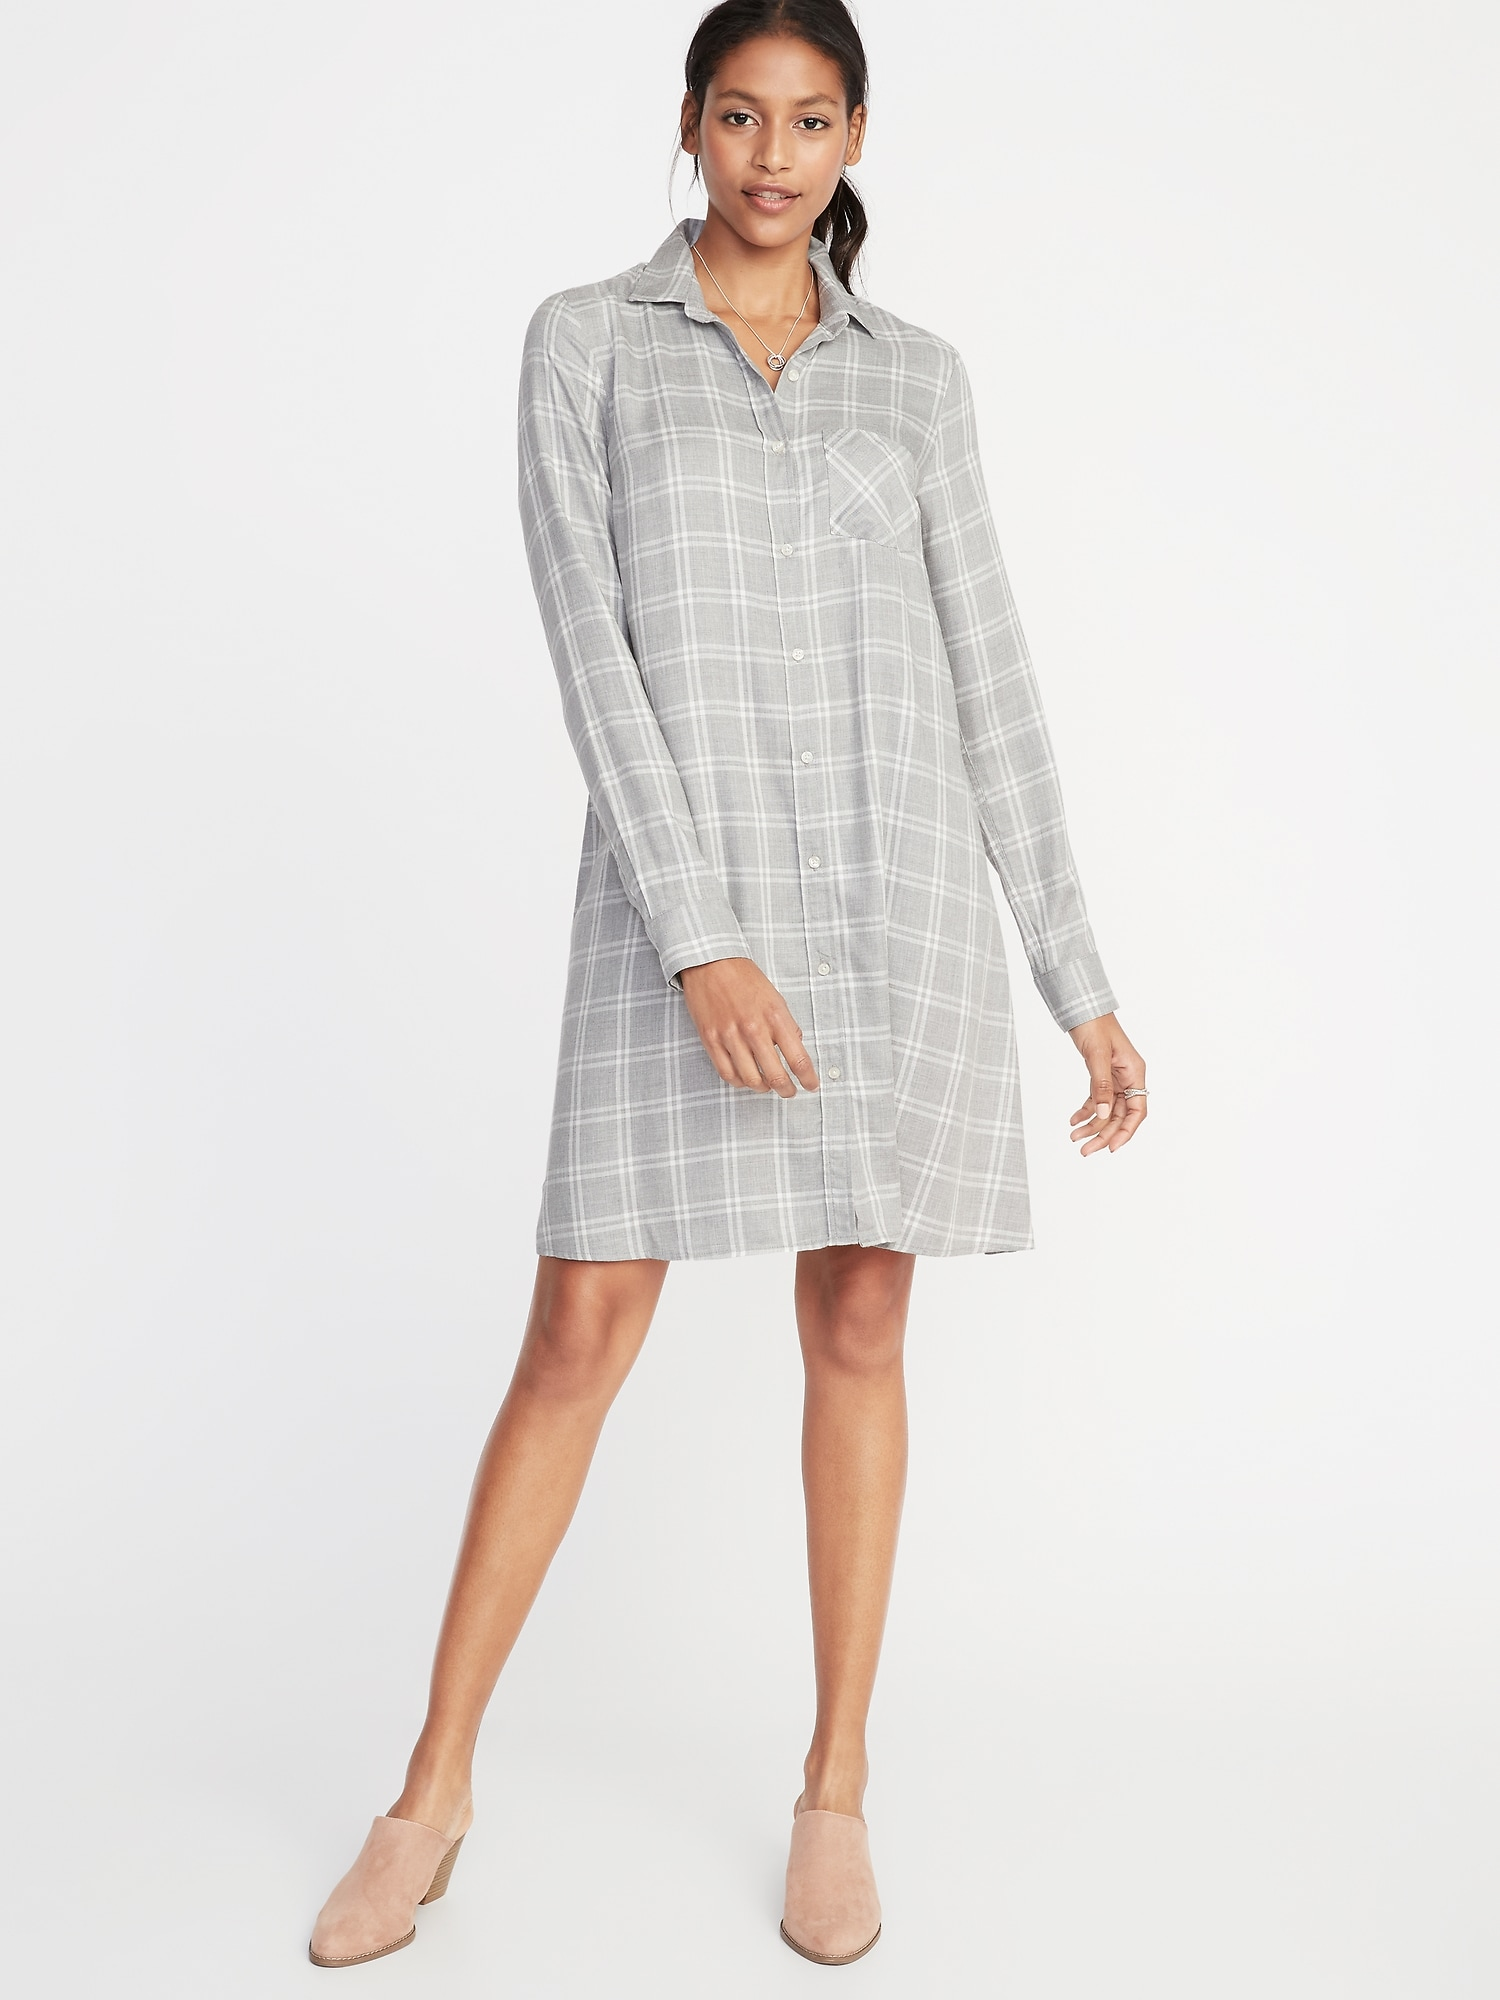 83babf4c5aae Plaid Swing Shirt Dress for Women